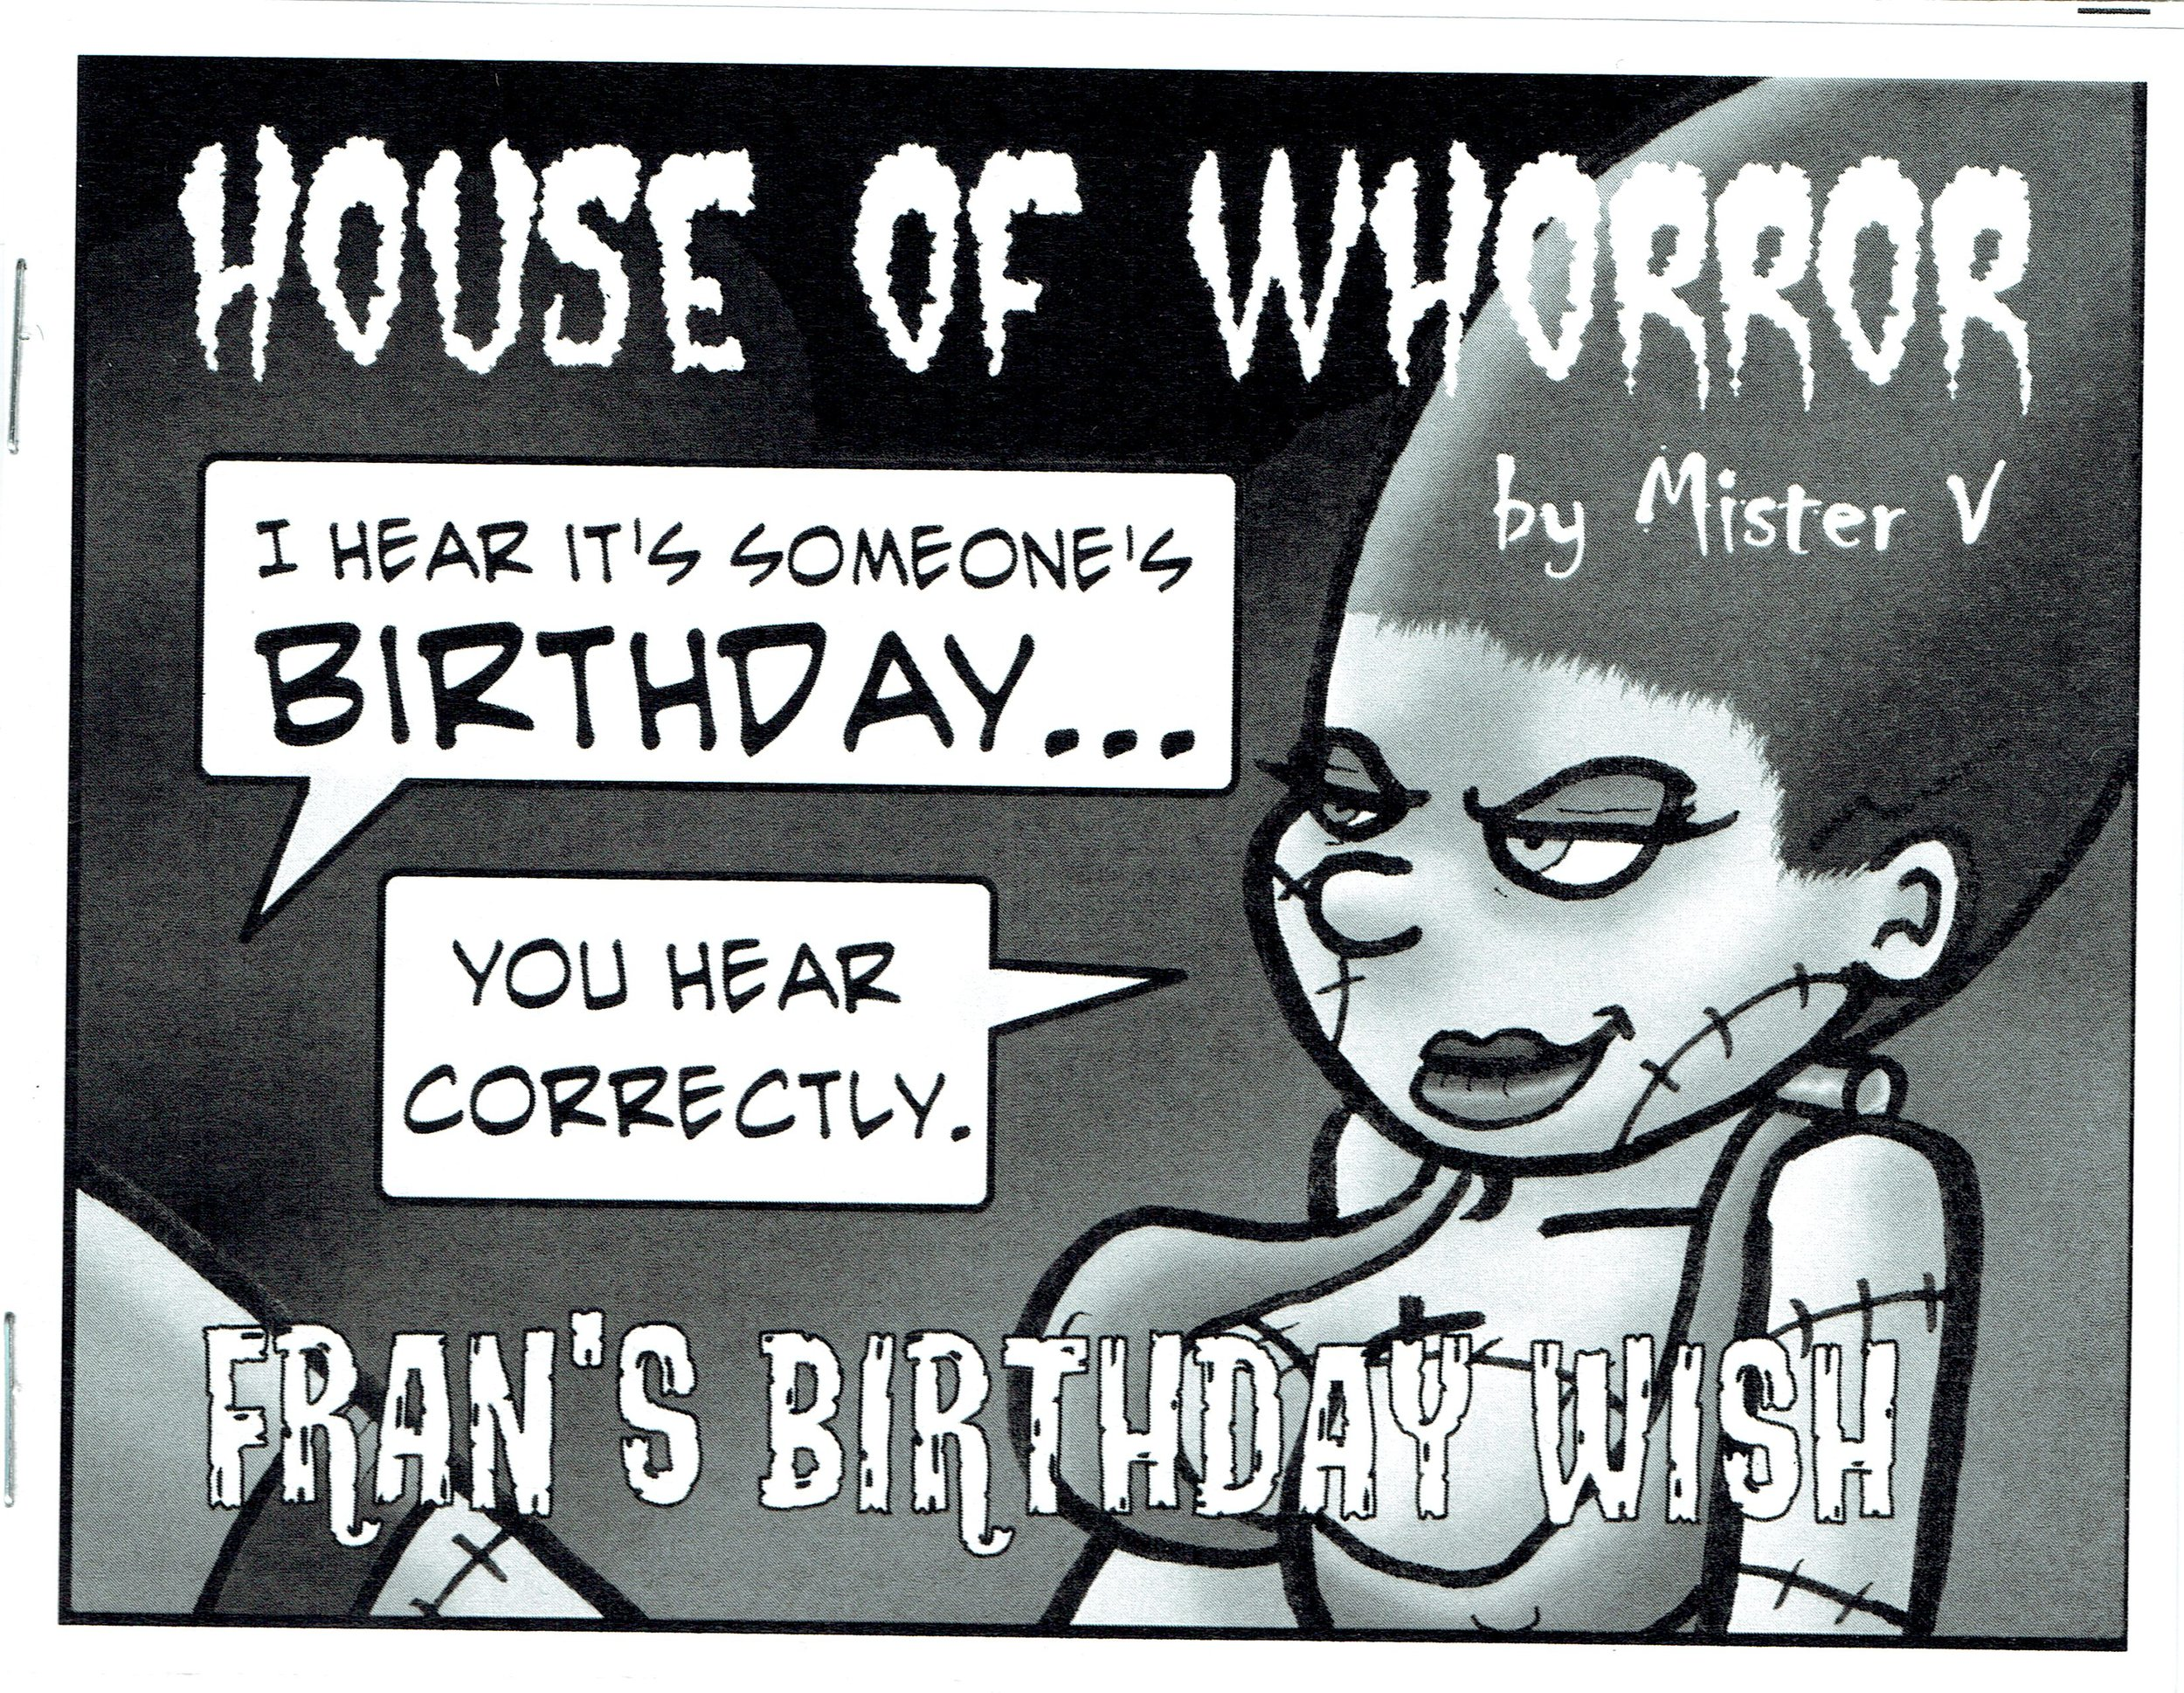 House of Whorror, a tiajuana bible from Mister V.